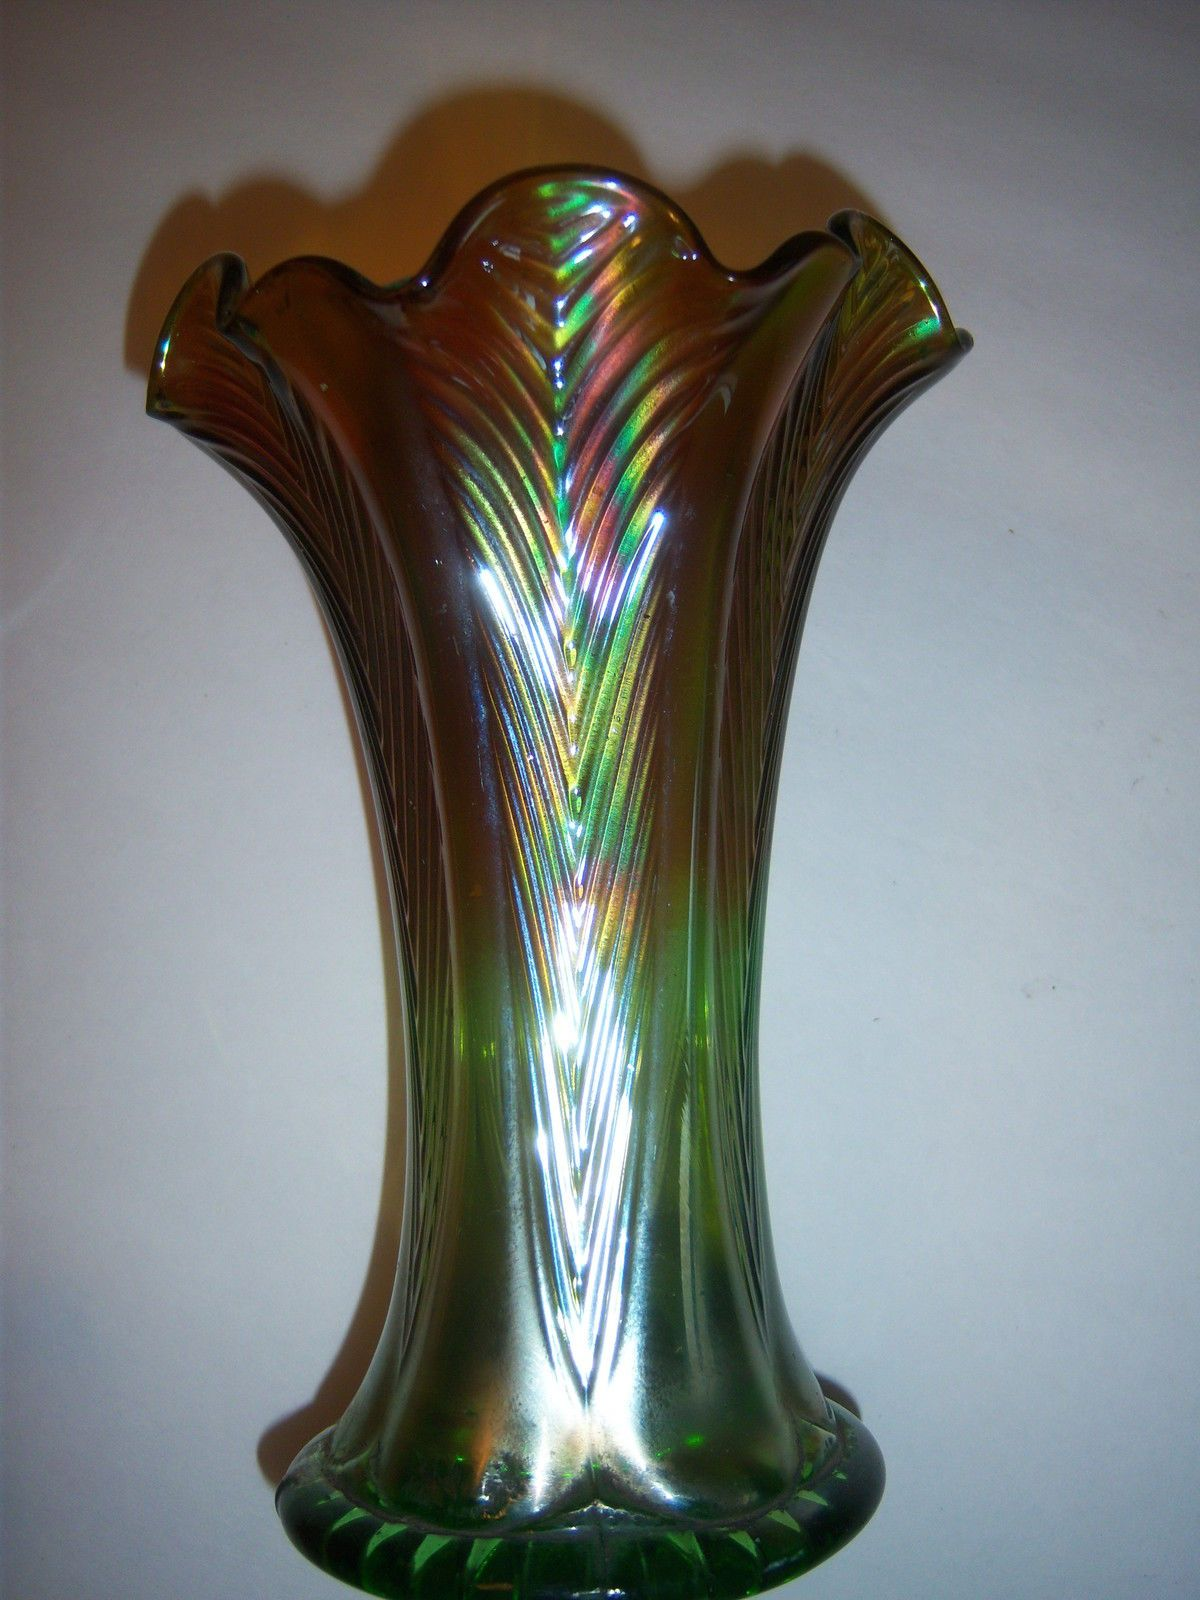 Northwood antique squatty feathers carnival glass vase green glass northwood antique squatty feathers carnival glass vase green reviewsmspy